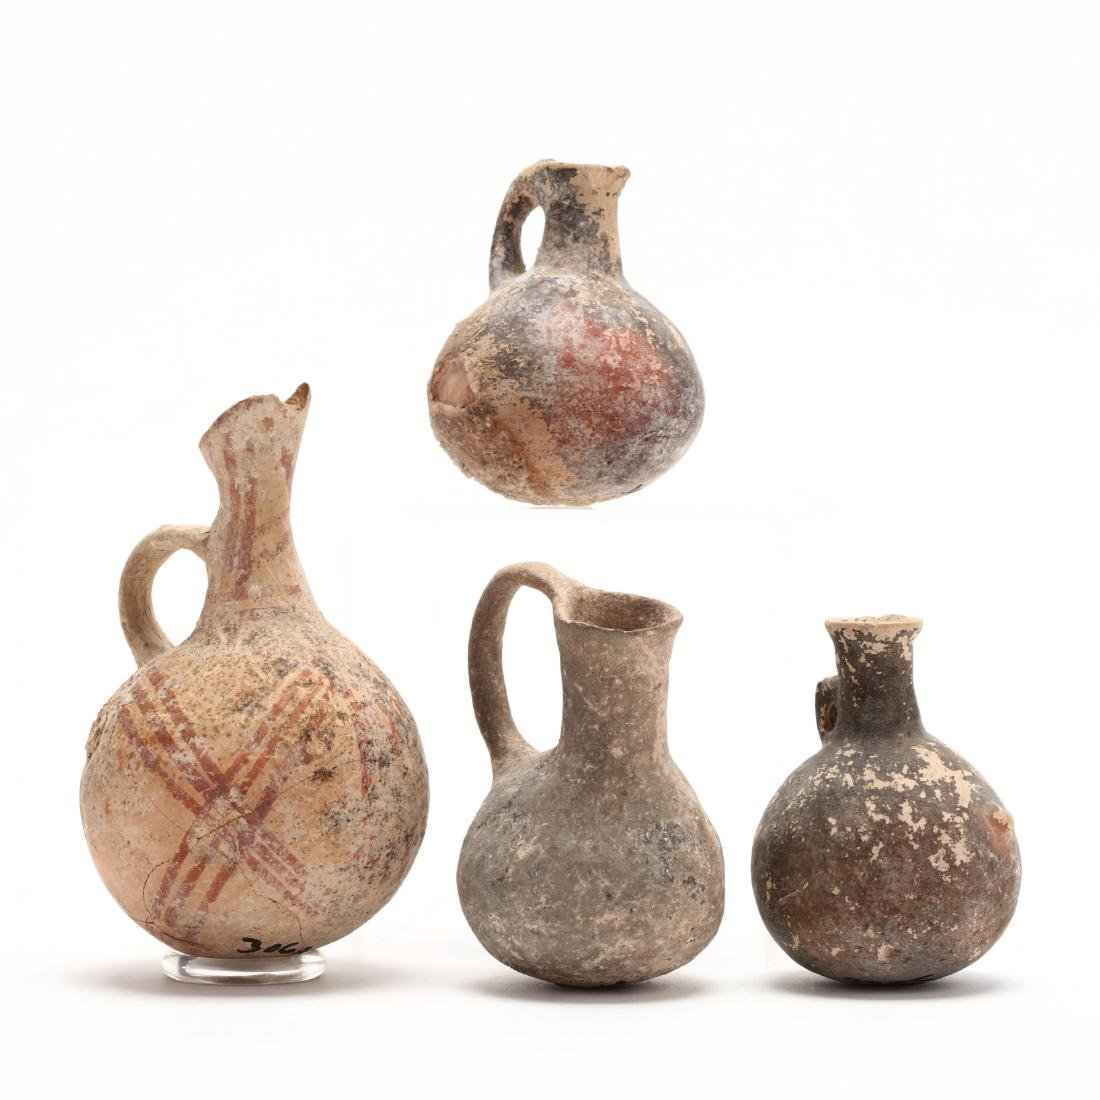 Four Cypriot Bronze Age Juglets